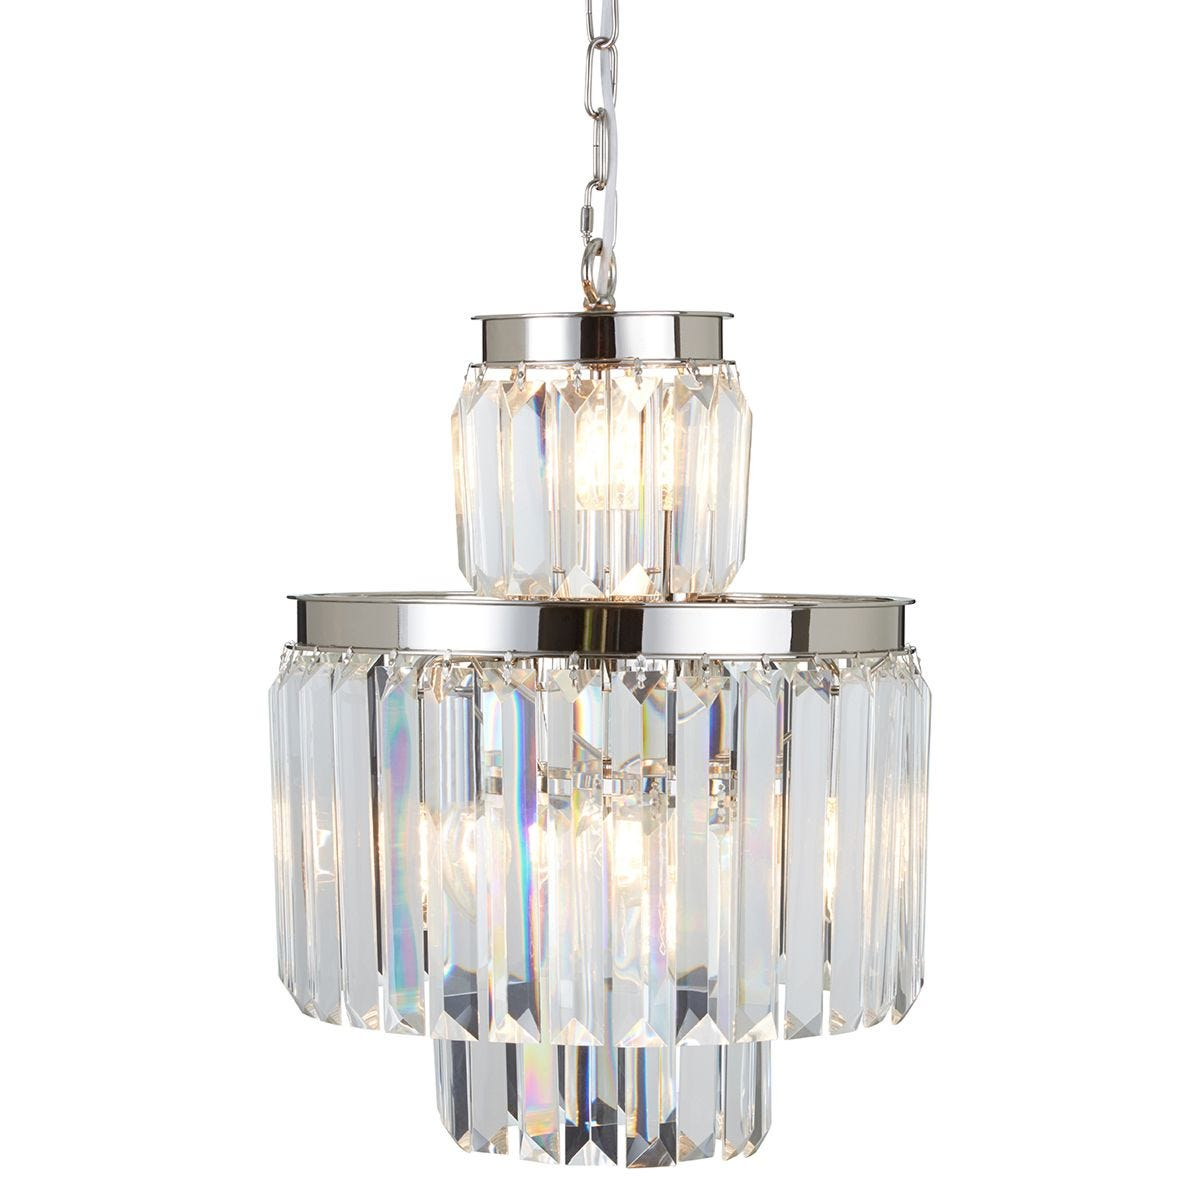 Premier Housewares Kensington Townhouse Pendant Light in Chrome with Crystals - 6 Bulbs